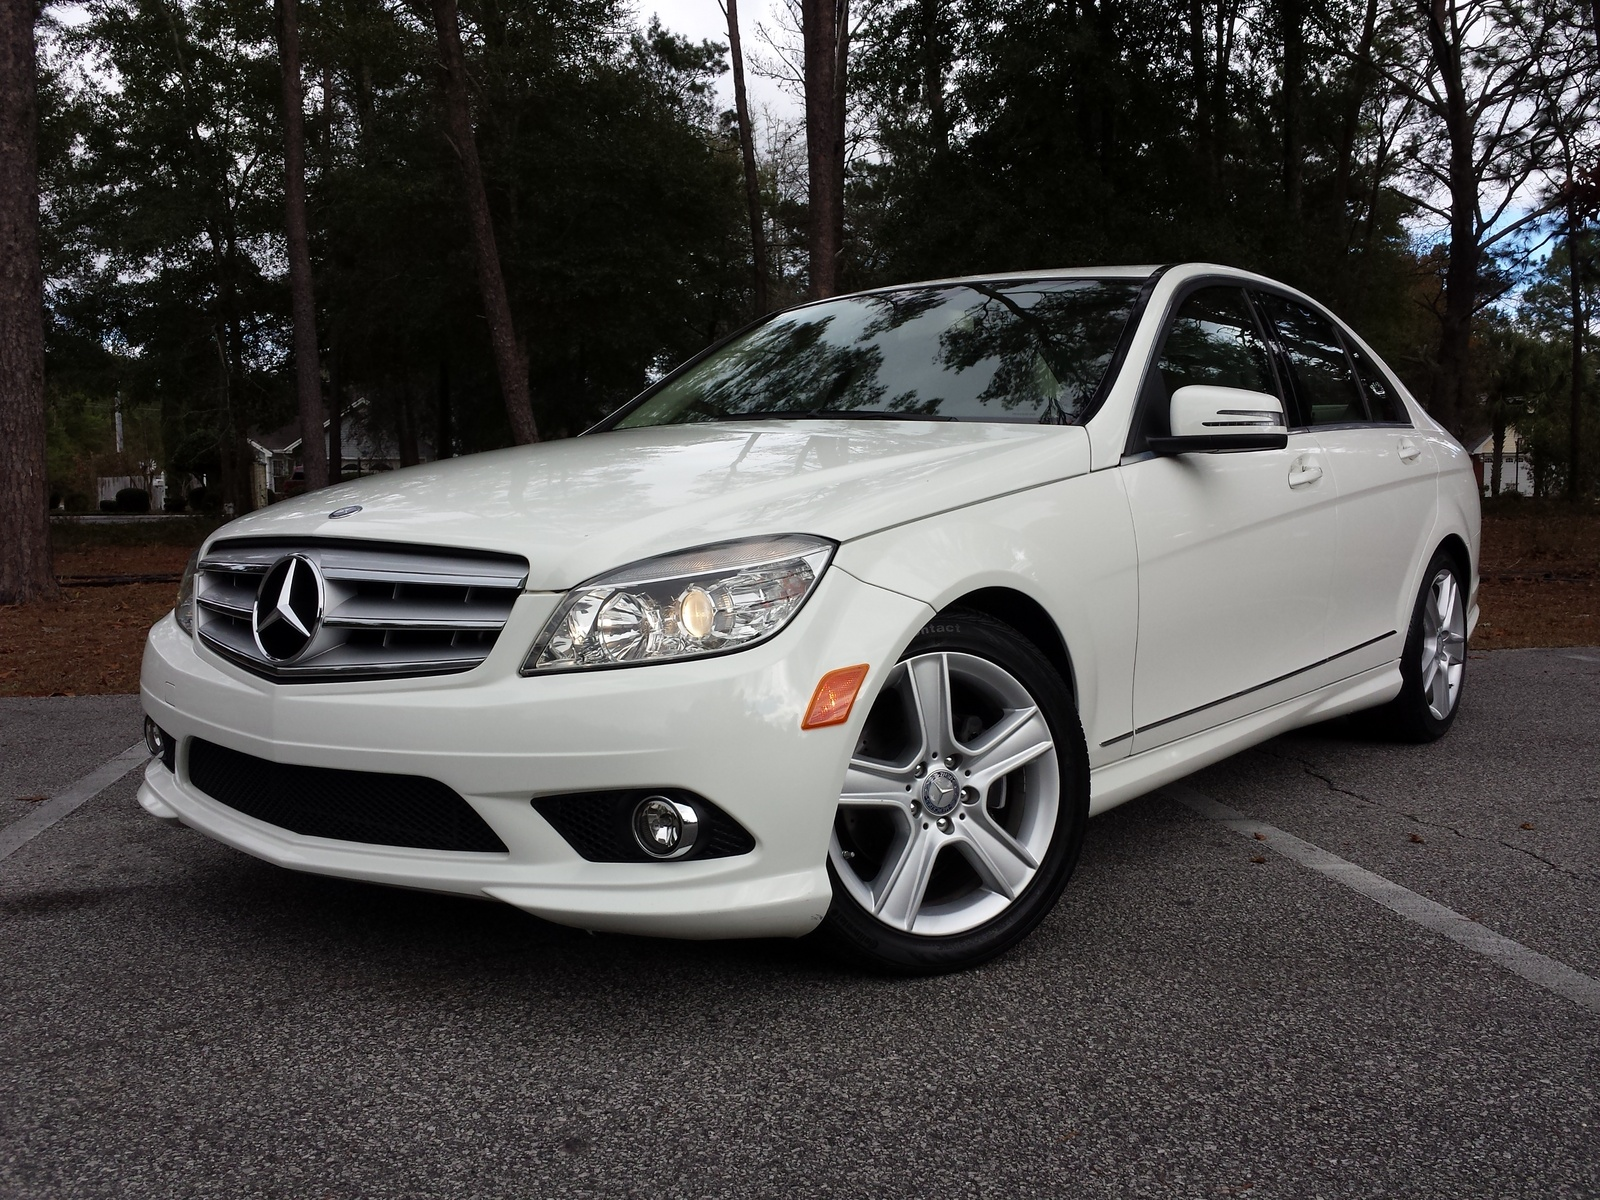 Picture of 2010 mercedes benz c class c300 luxury exterior for Mercedes benz c350 2010